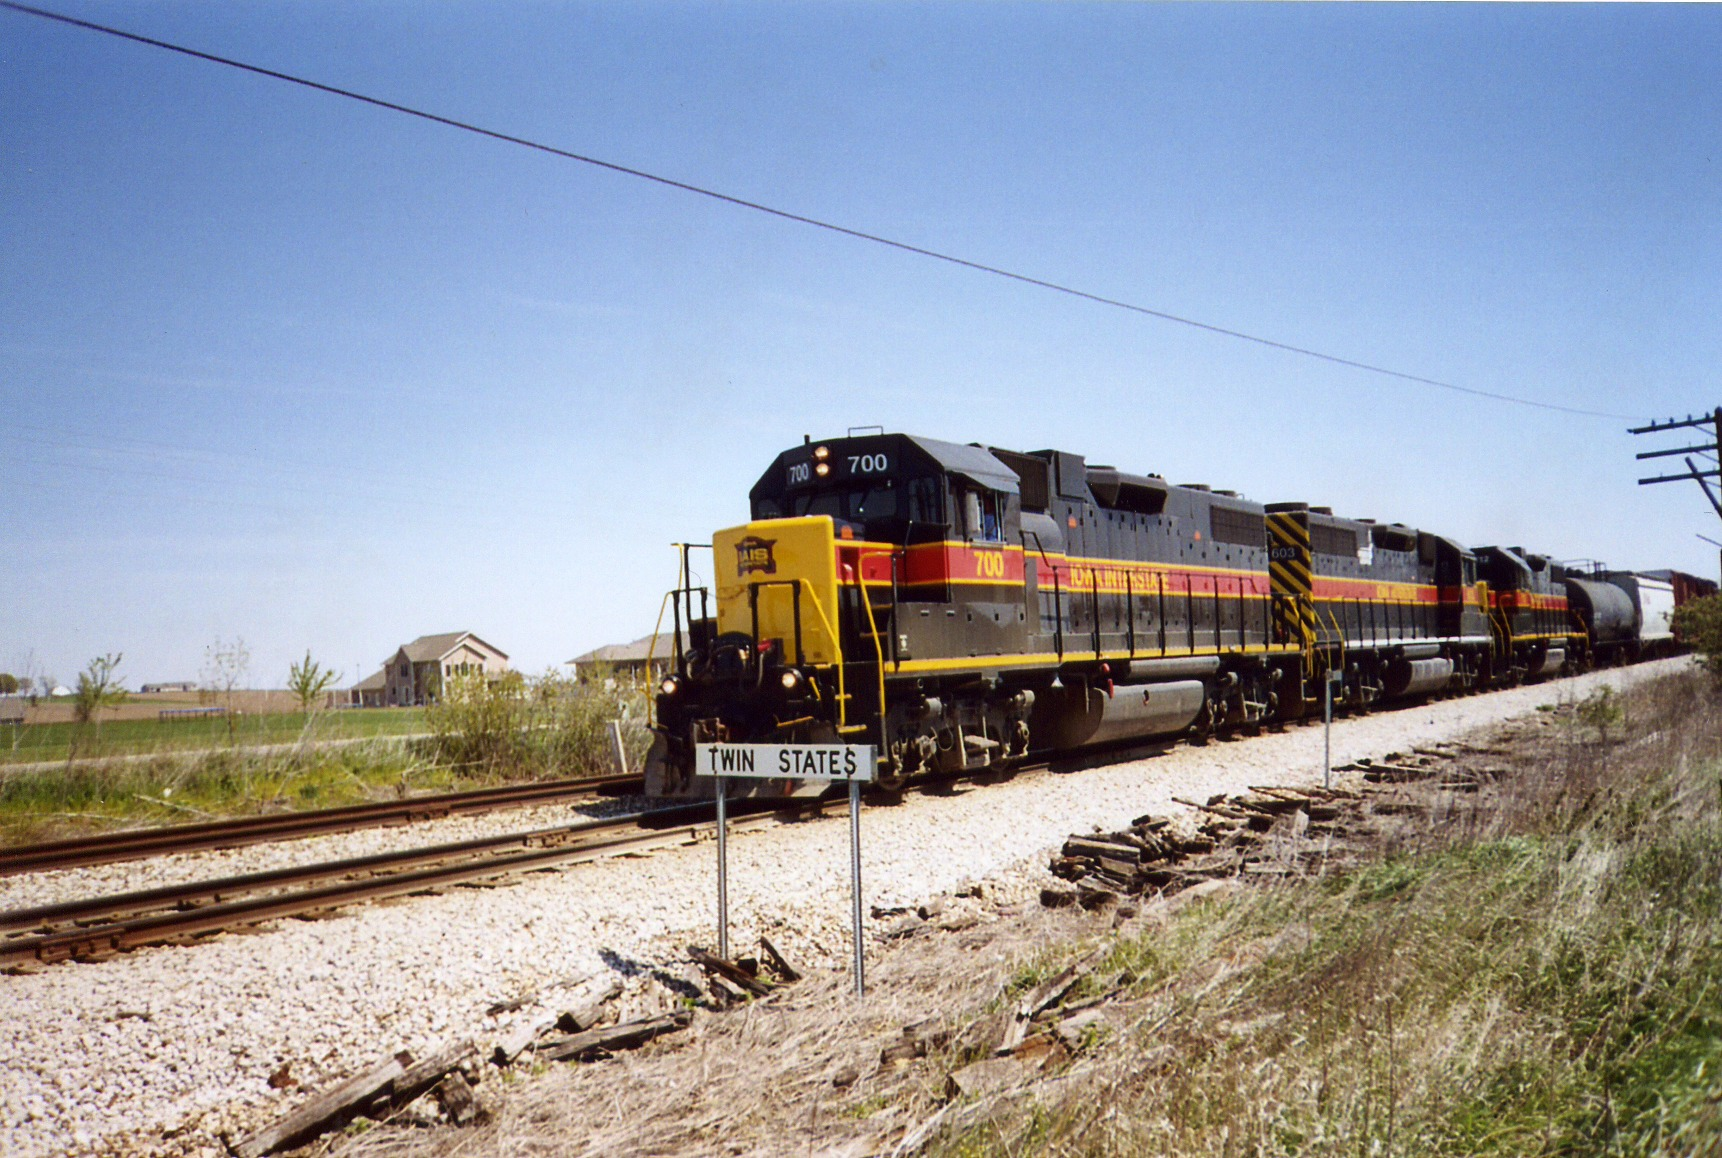 Westbound BICB passes Twin States, May 2005